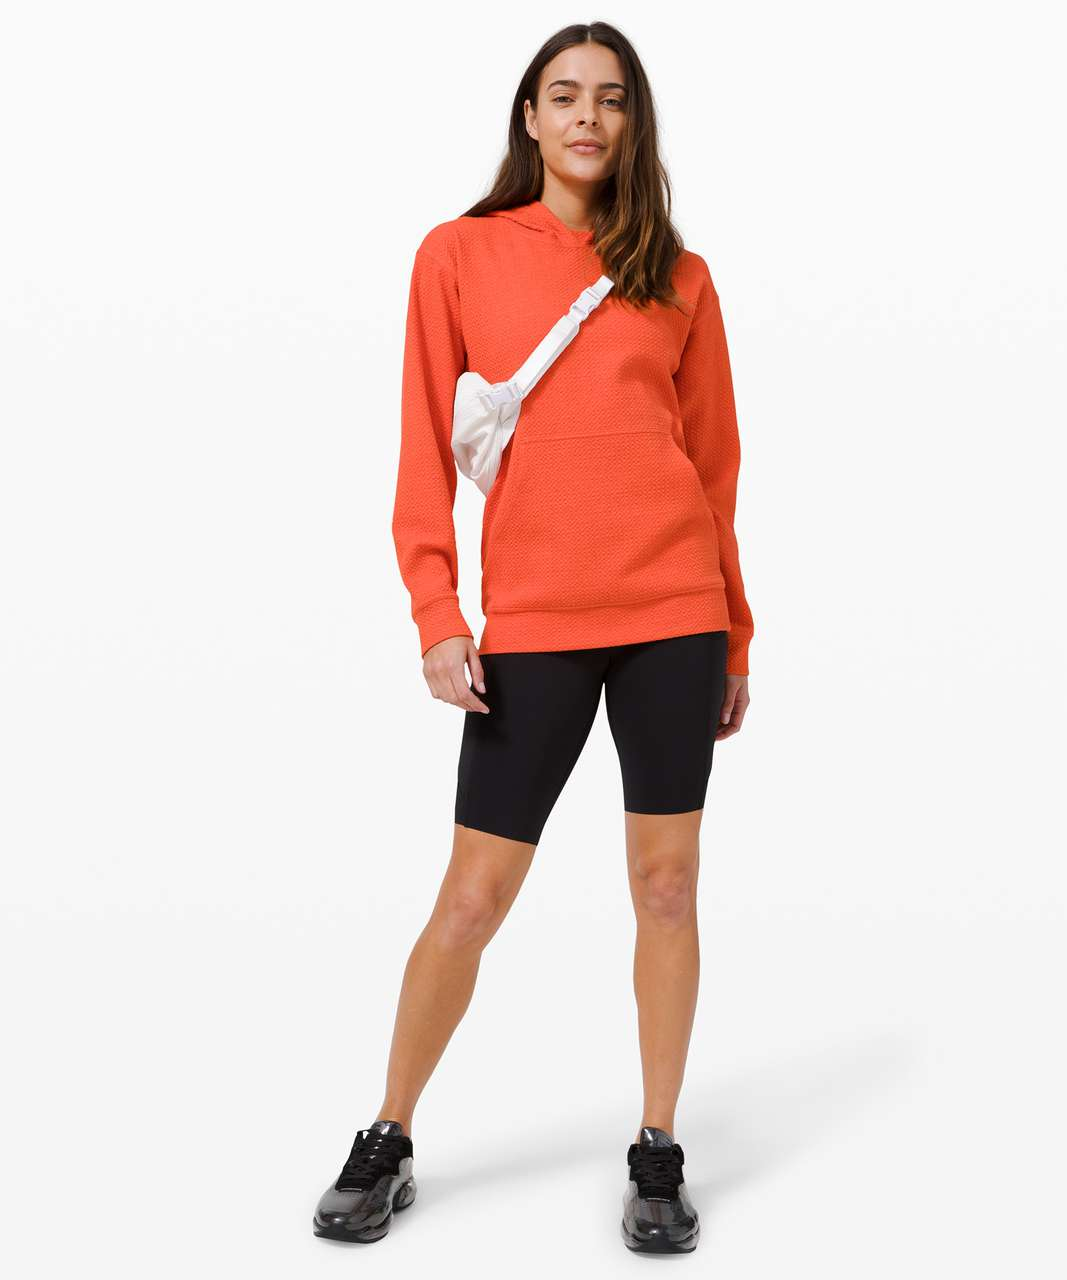 Lululemon All Yours Hoodie *Bubble Dot - Heathered Brick / White